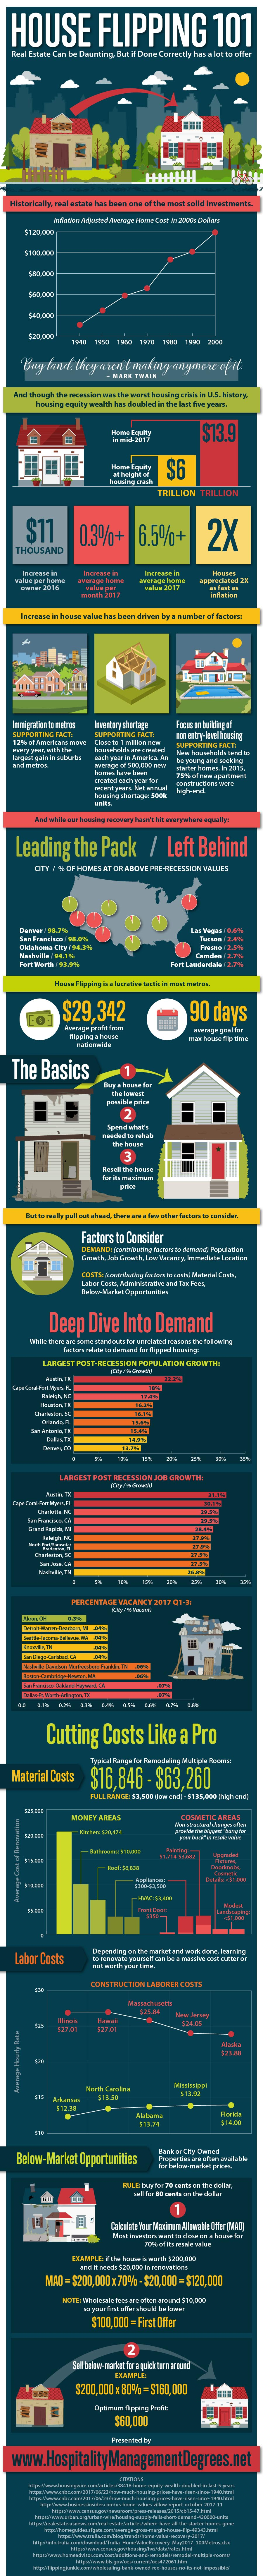 House Flipping 101 [Infographic]